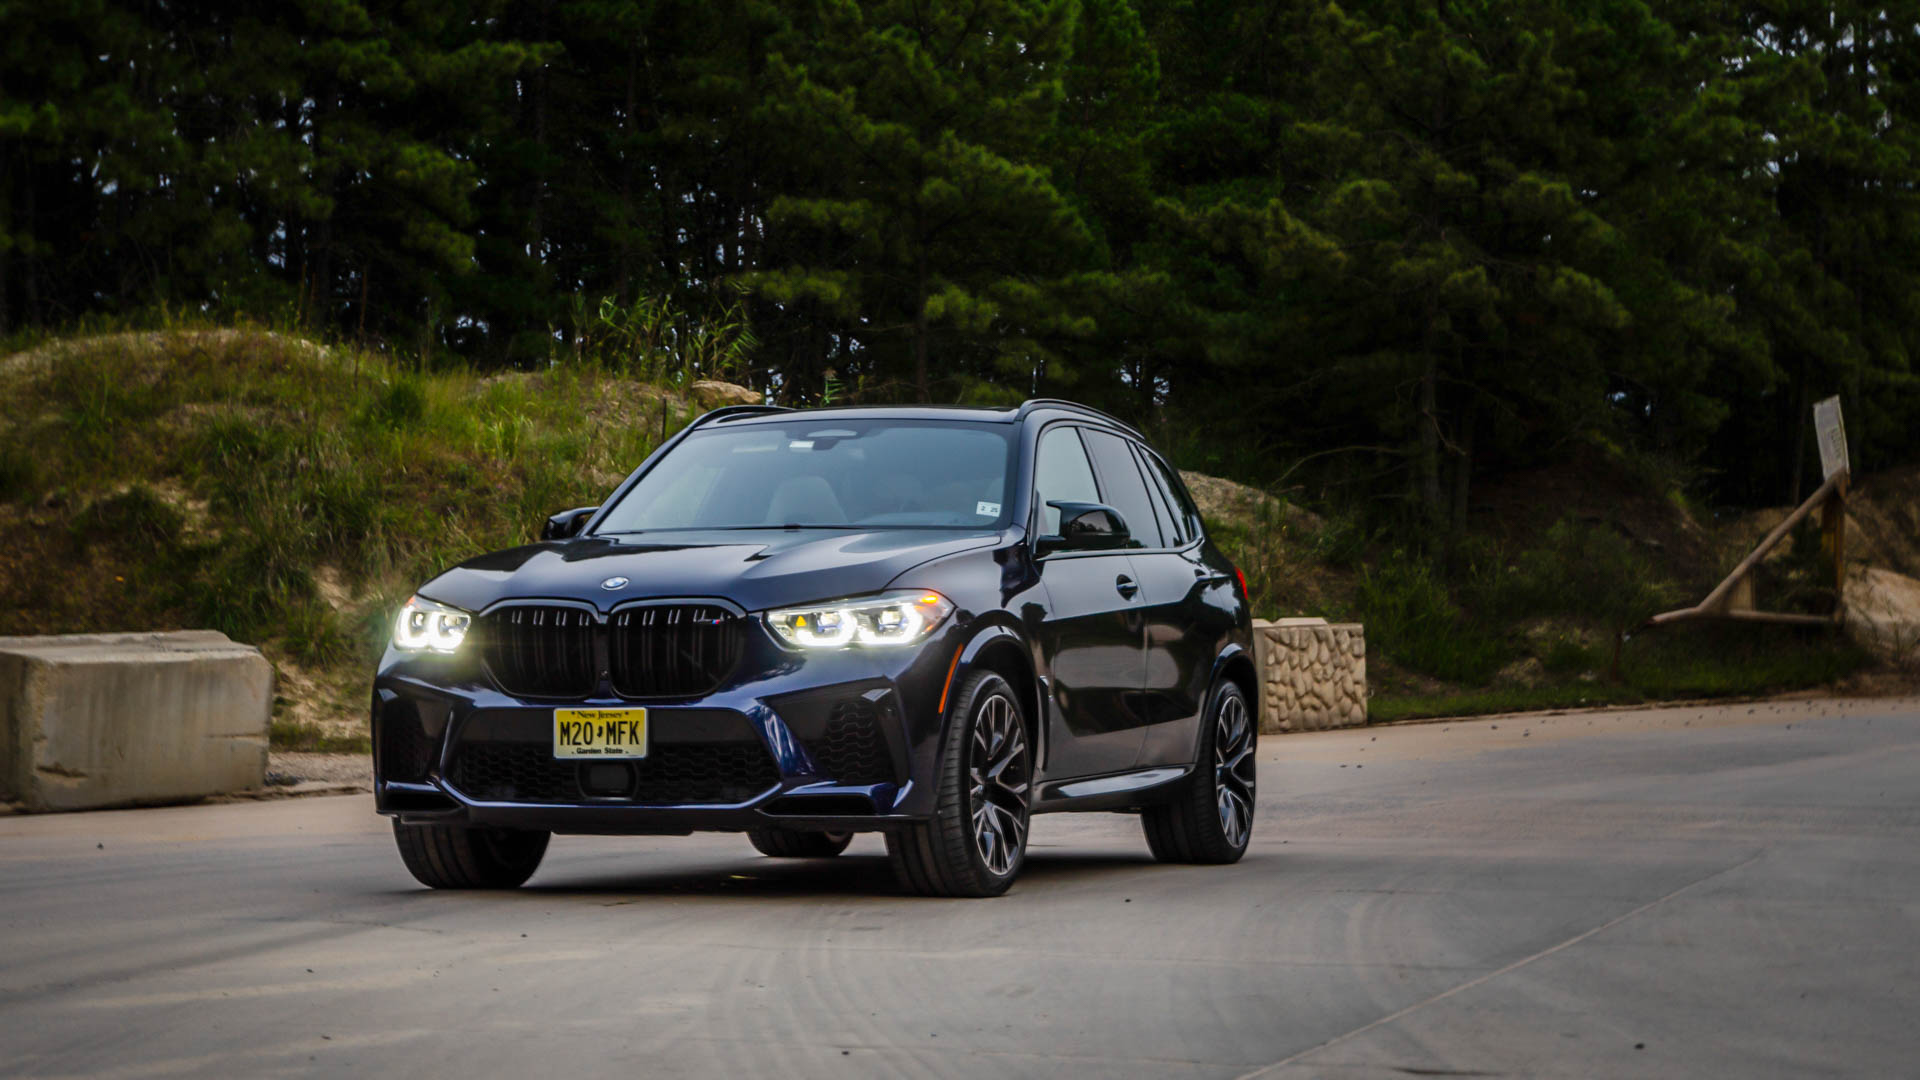 TEST DRIVE: BMW X5 M Competition — Worth Buying Over the M50i?